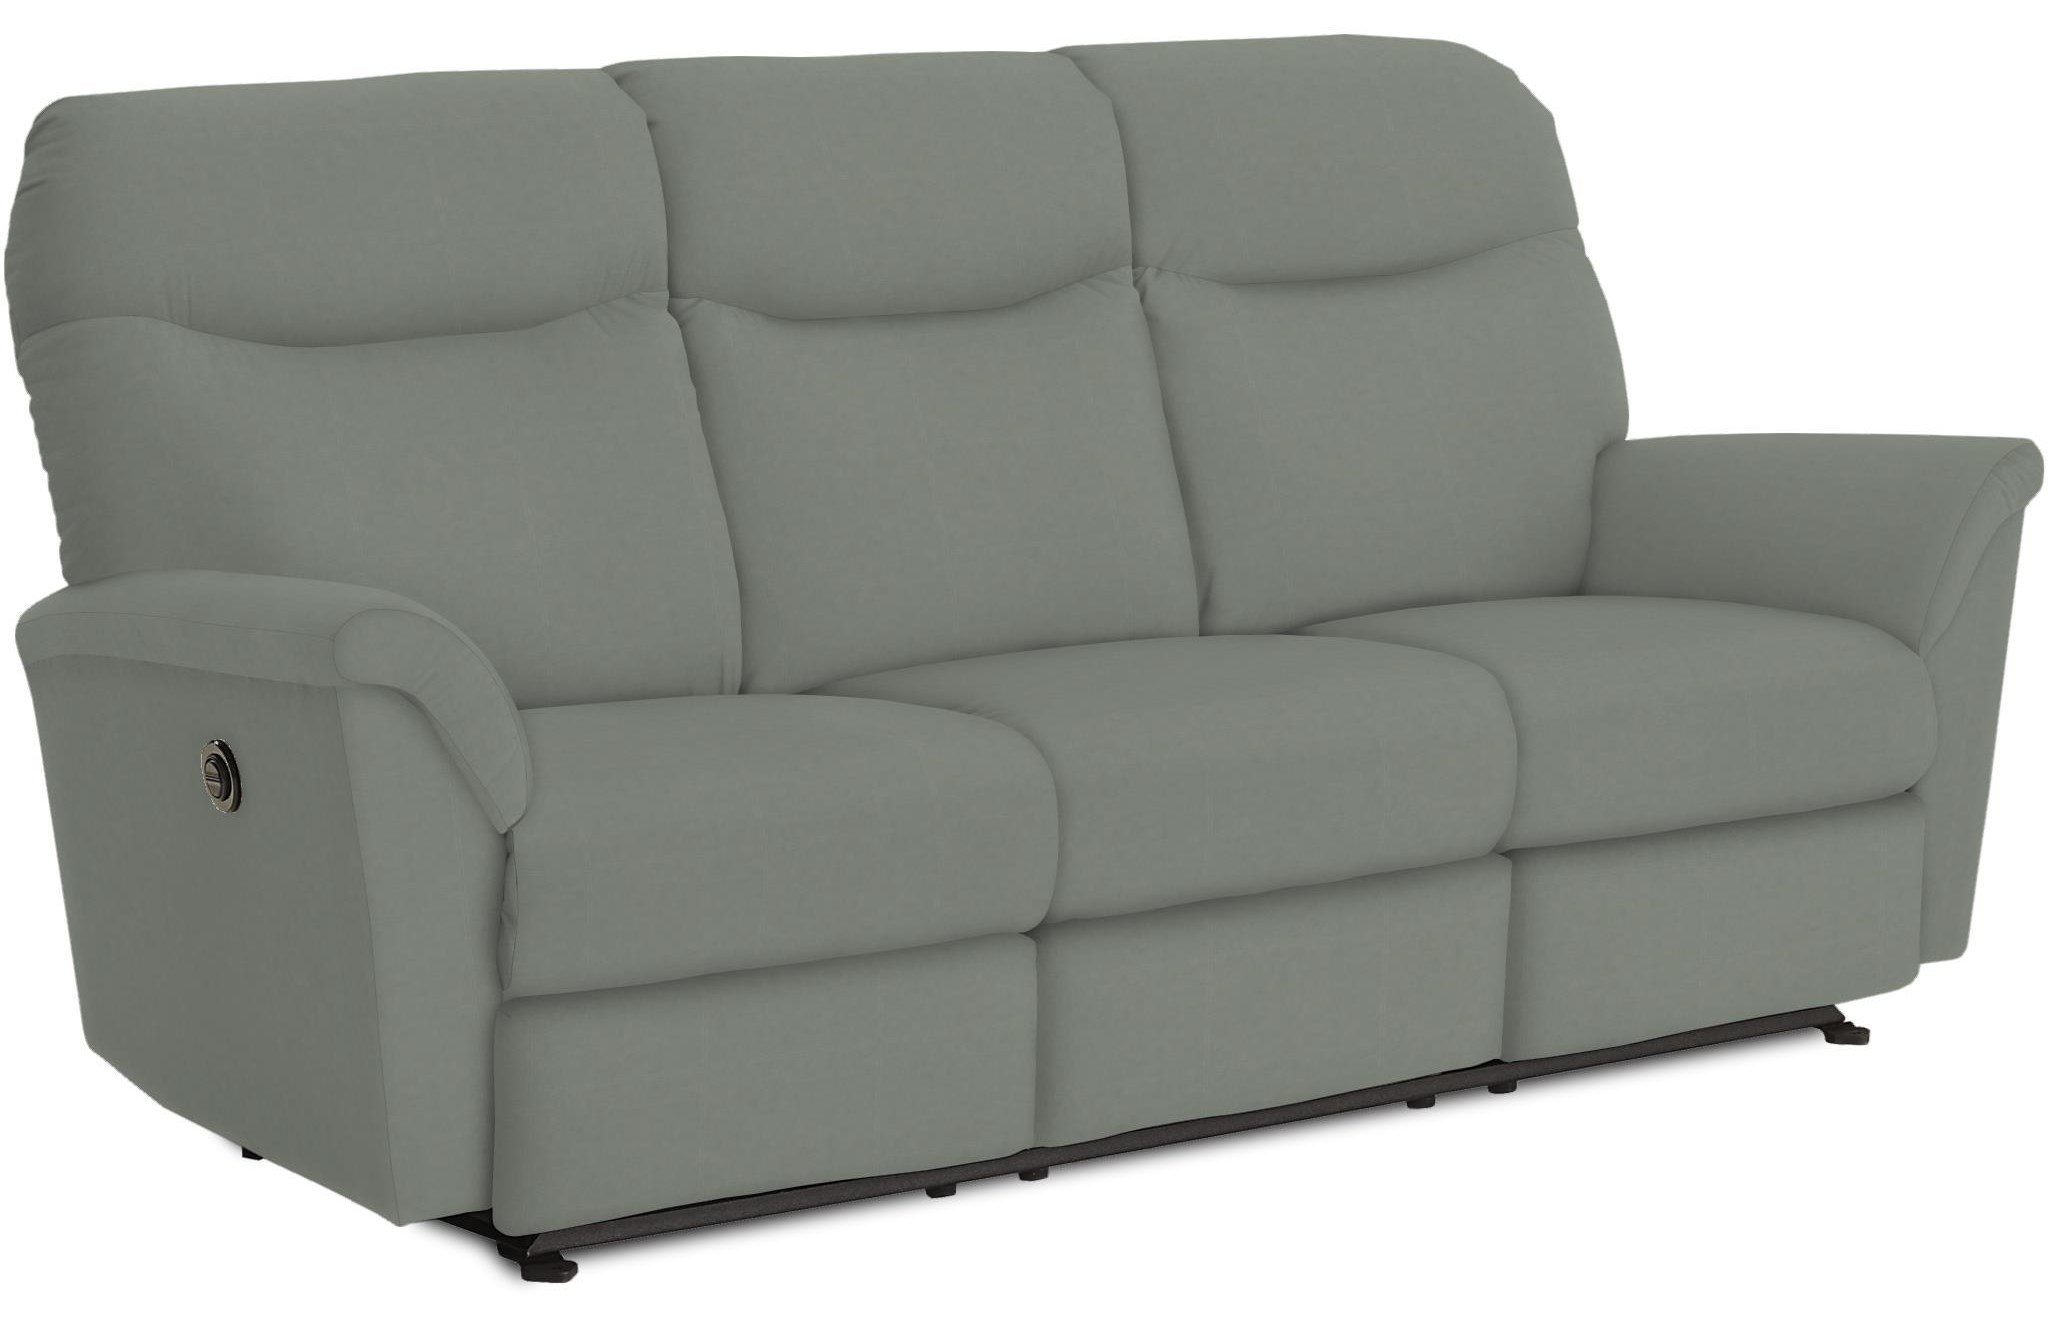 Mabry Power Headrest Reclining Sofa by Best Home Furnishings at Crowley Furniture & Mattress